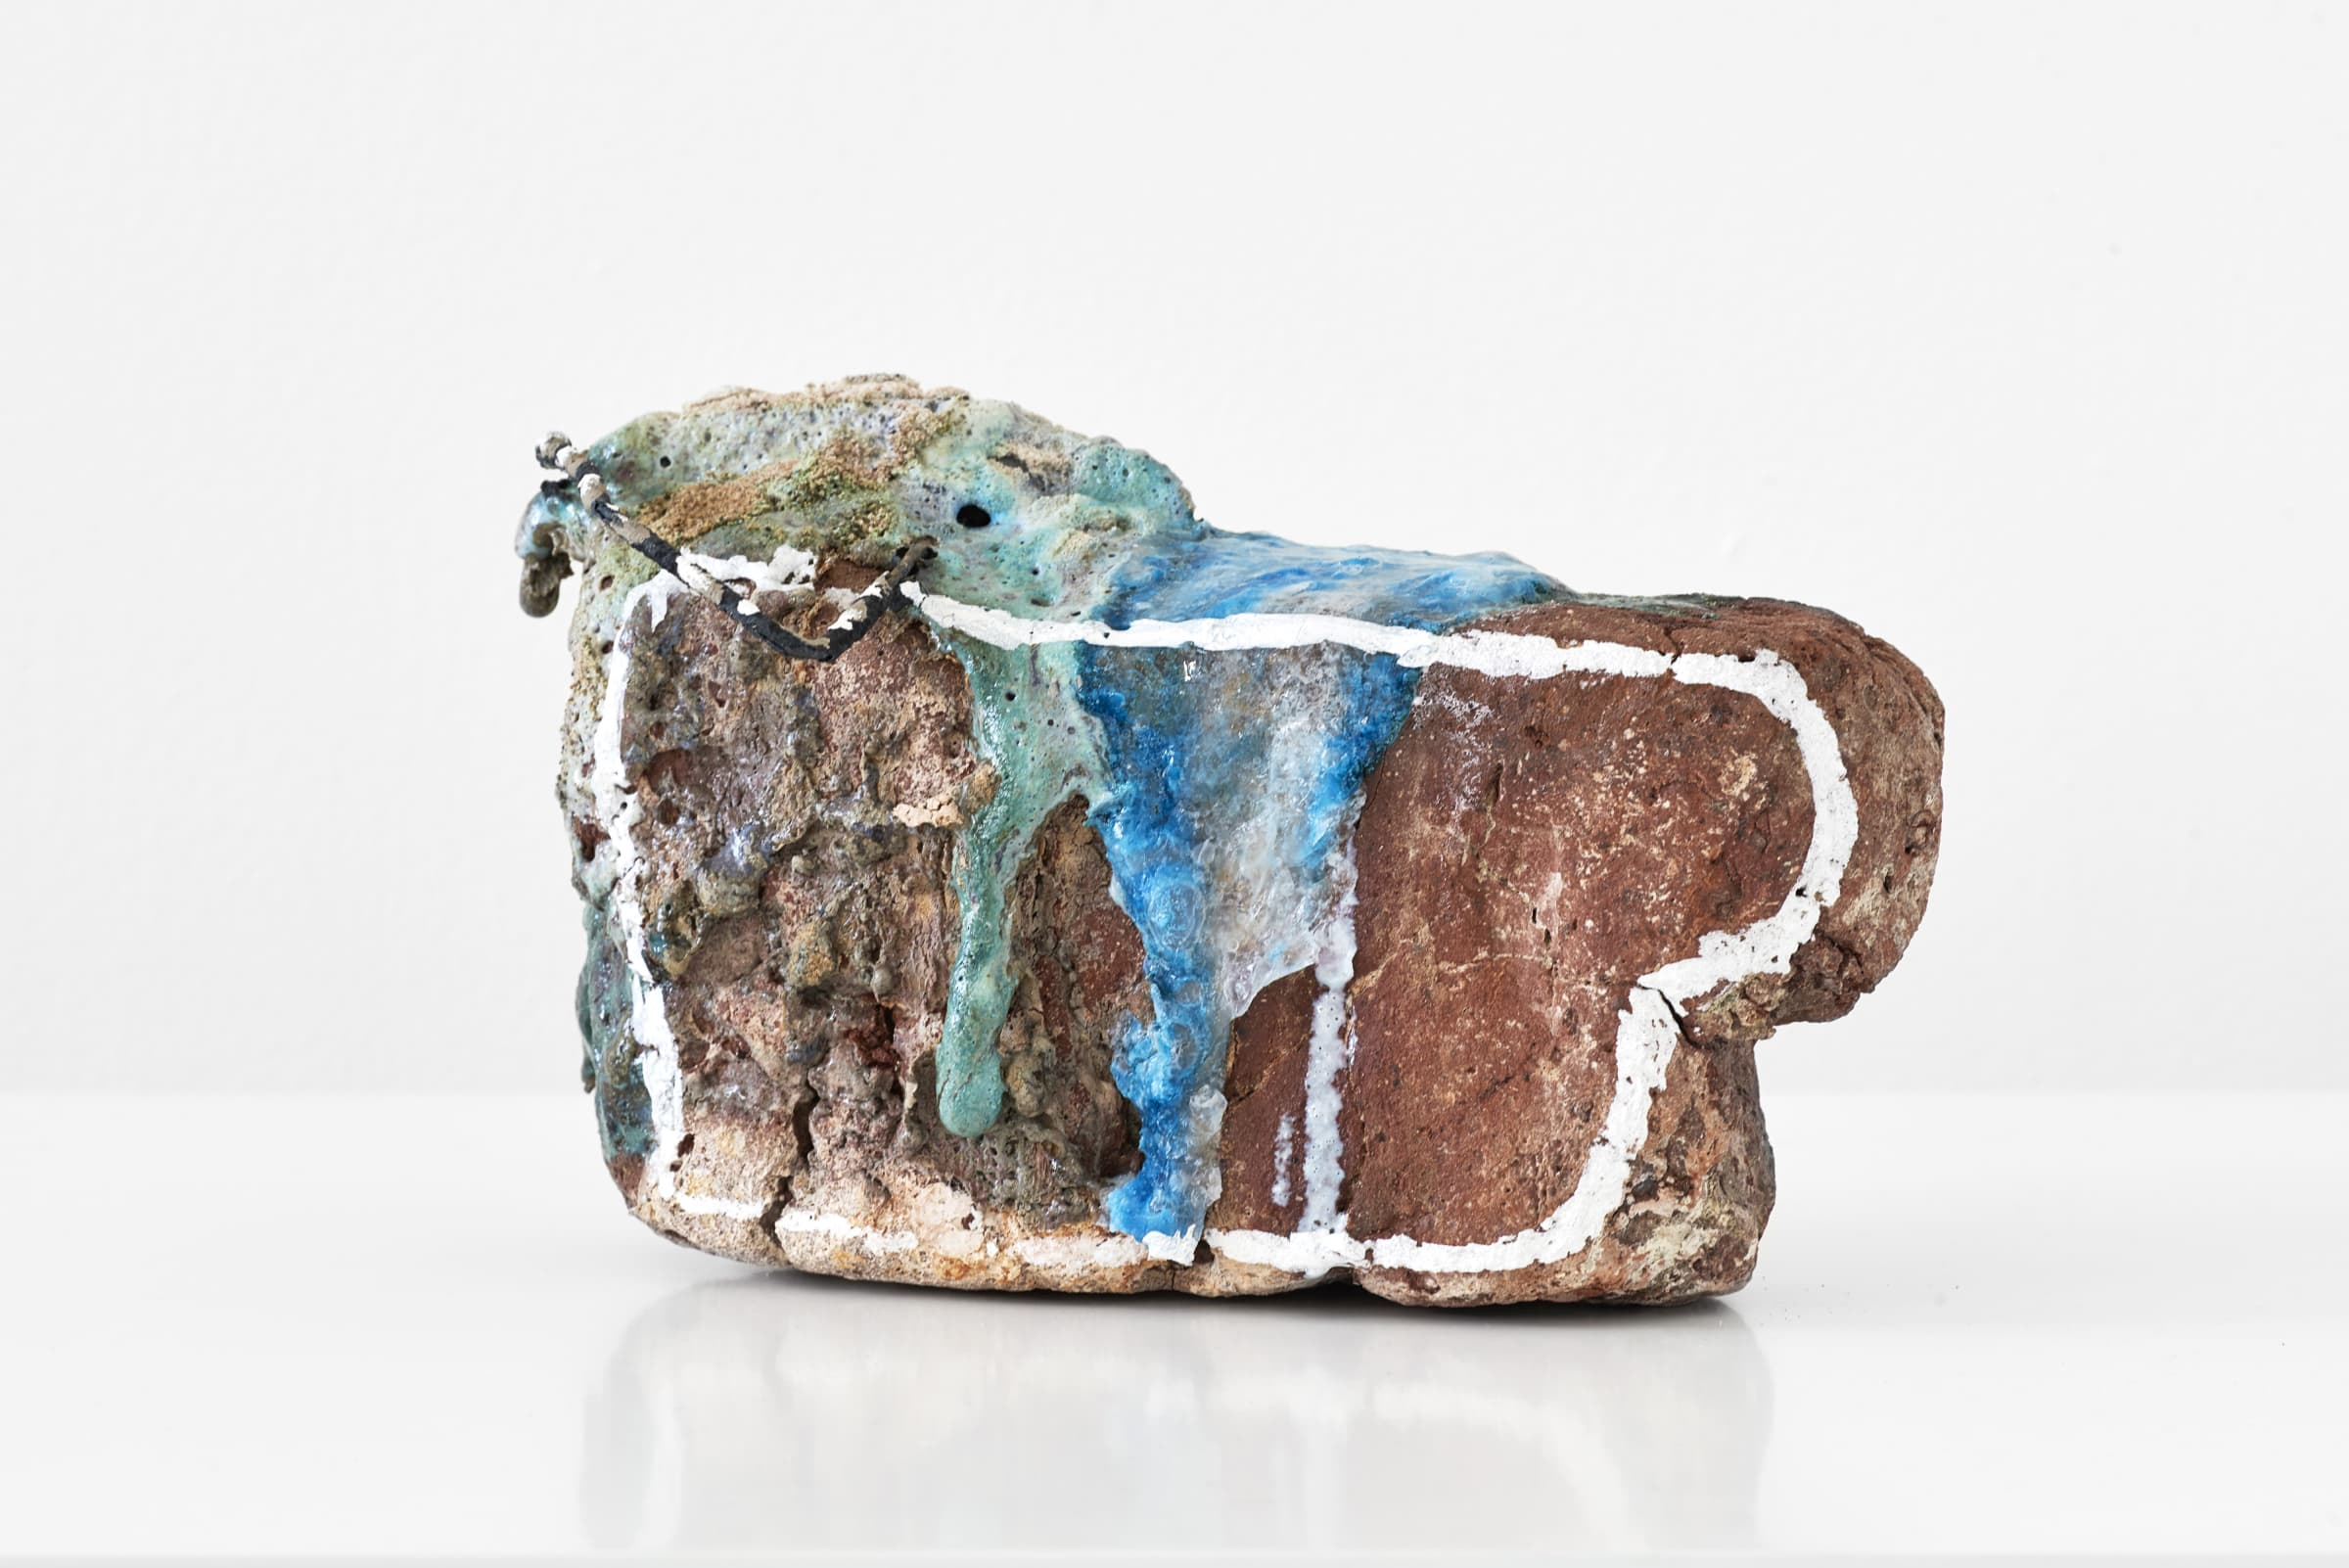 <span class=&#34;link fancybox-details-link&#34;><a href=&#34;/exhibitions/169/works/artworks10717/&#34;>View Detail Page</a></span><div class=&#34;medium&#34;>Refired found local brick, copper glaze with glass, sand, found metal, liquid chalk</div> <div class=&#34;dimensions&#34;>15 x 25.5 x 14 cm<br /> 5 7/8 x 10 1/8 x 5 1/2 in</div>